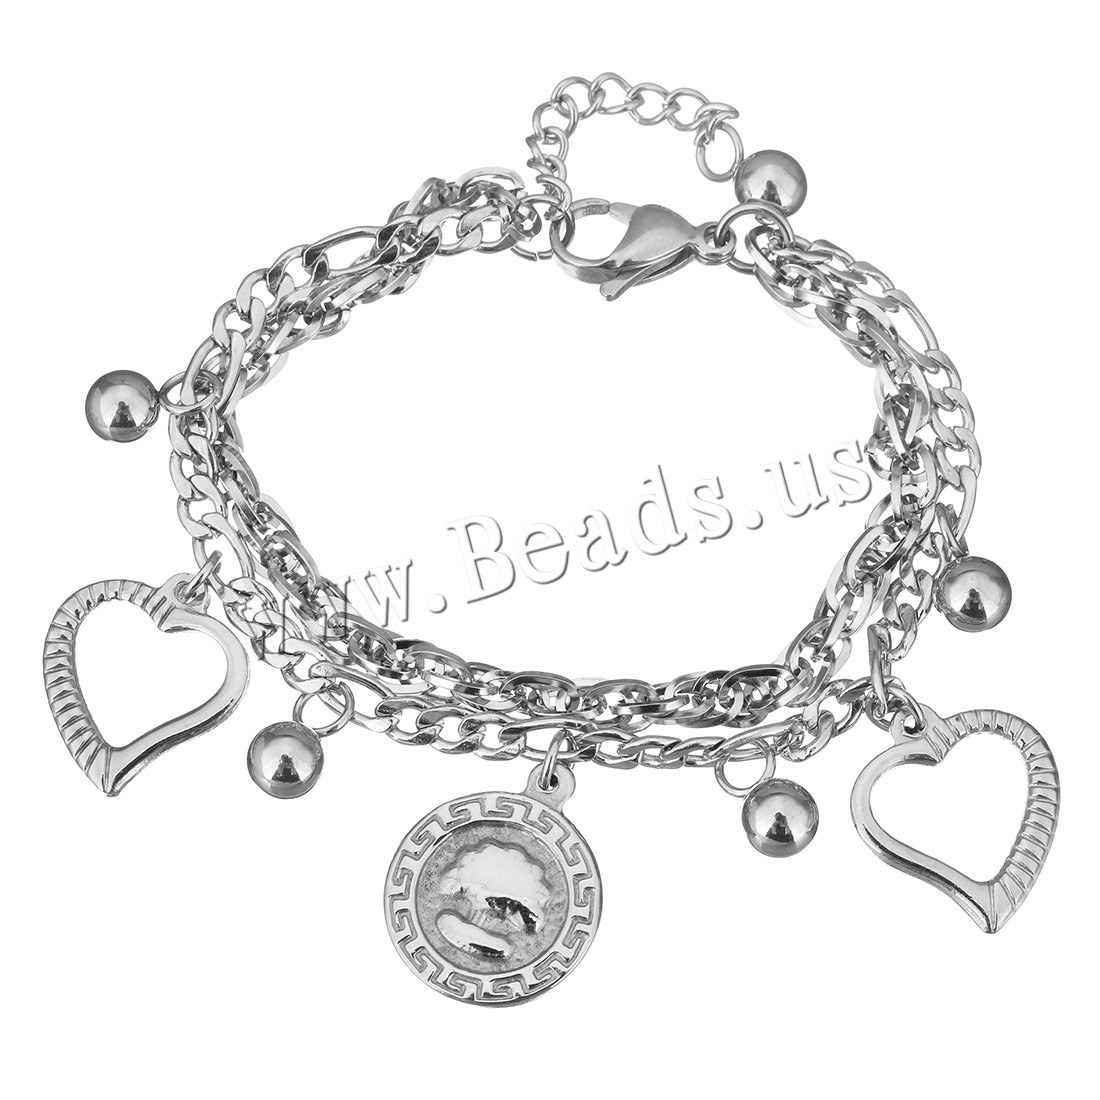 Buy Stainless Steel Jewelry Bracelet 1.5Inch extender chain charm bracelet & byzantine chain & curb chain & woman & 2-strand original color 16x19mm 16x18mm 4.5mm Sold Per Approx 6 Inch Strand